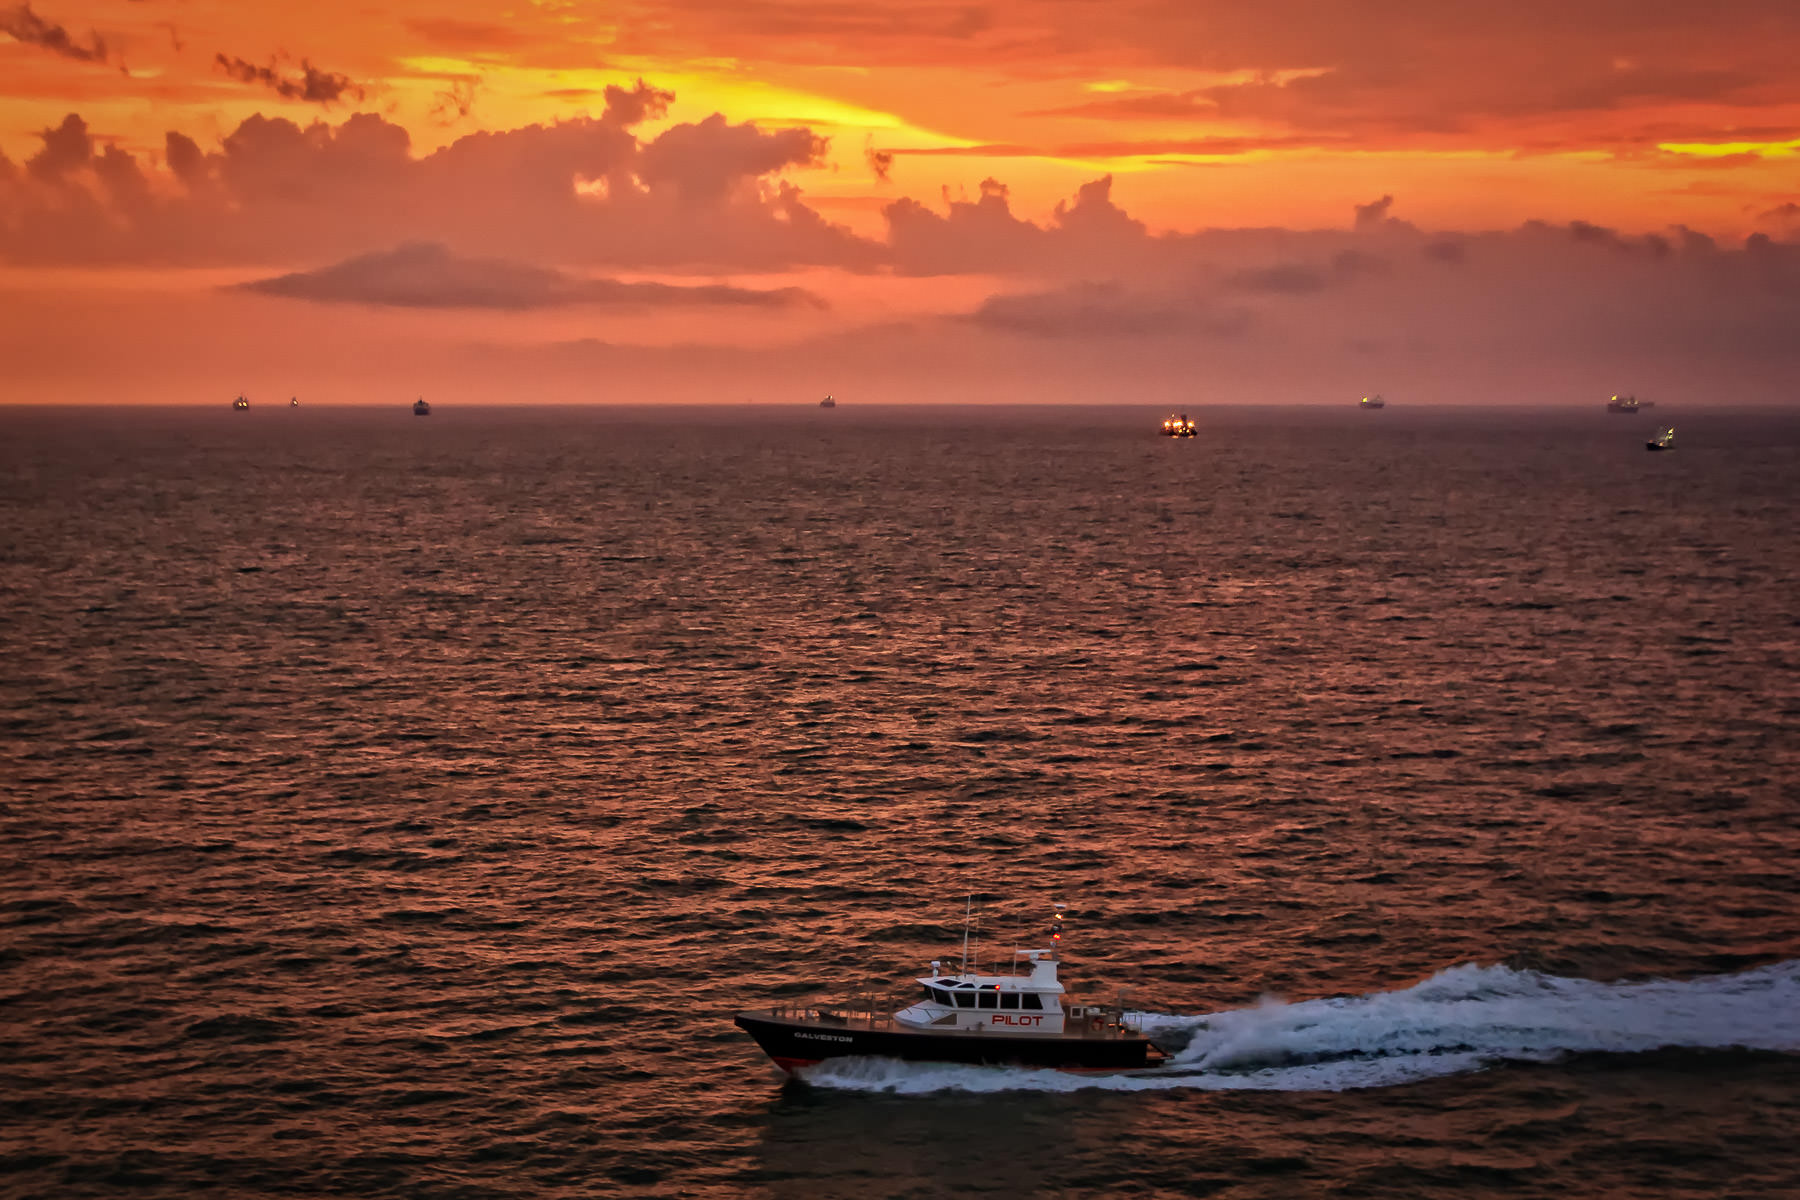 A Port of Galveston, Texas pilot boat carries a port pilot to a ship as dawn breaks over the Gulf of Mexico.